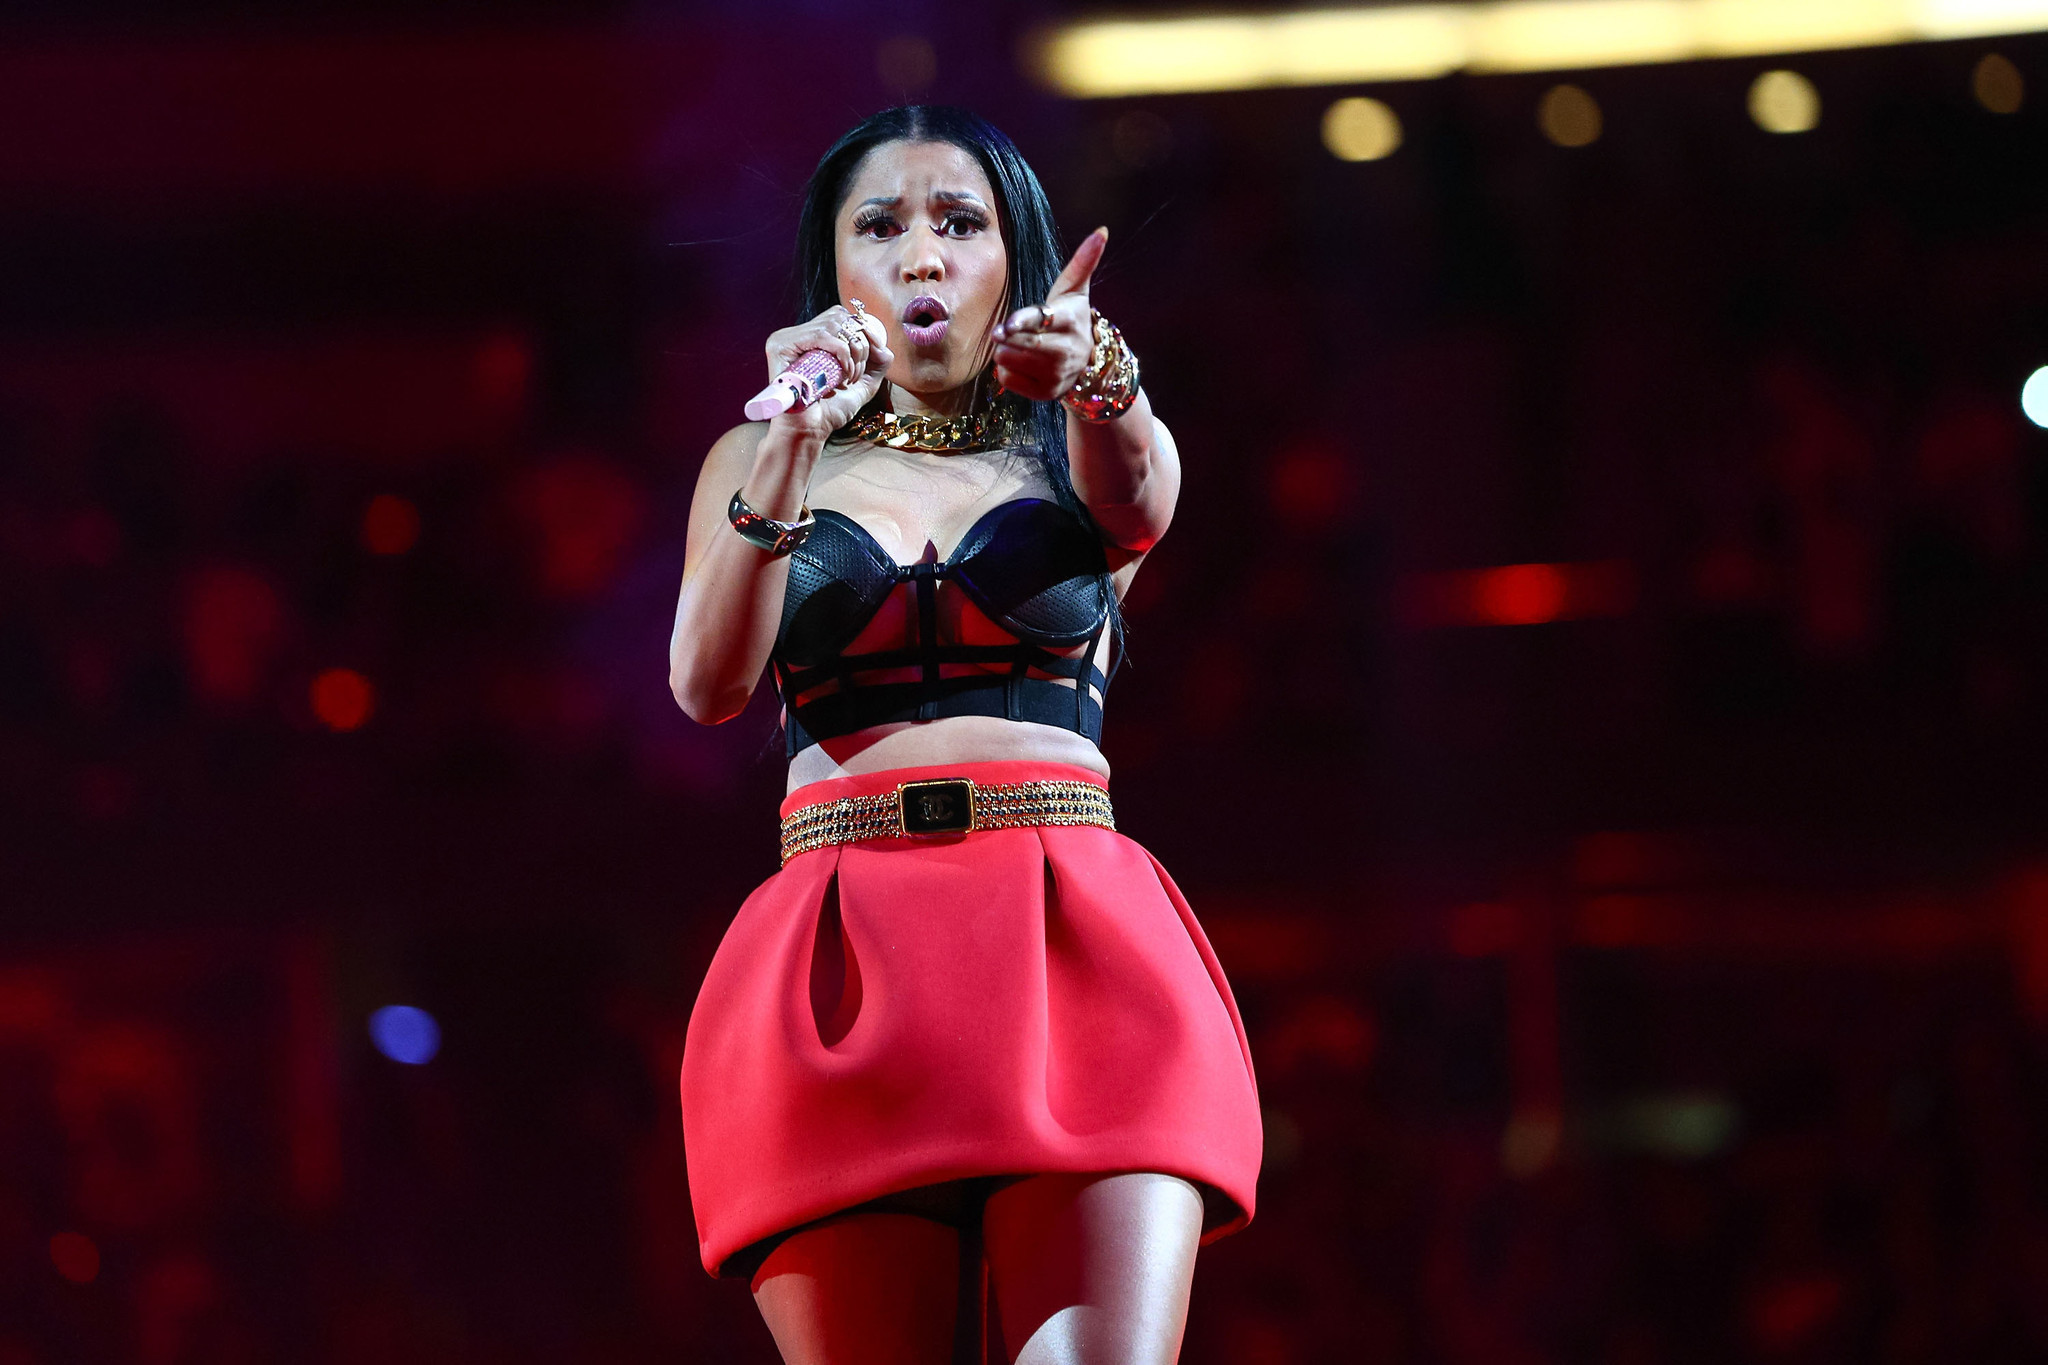 nicki minaj new single release date Nicki minaj just took to social media to announce the release date of her collaboration with dj calvin harris the trinidadian rapper made the announcement after confirming that she has a lot of new music slated for release this month of june.